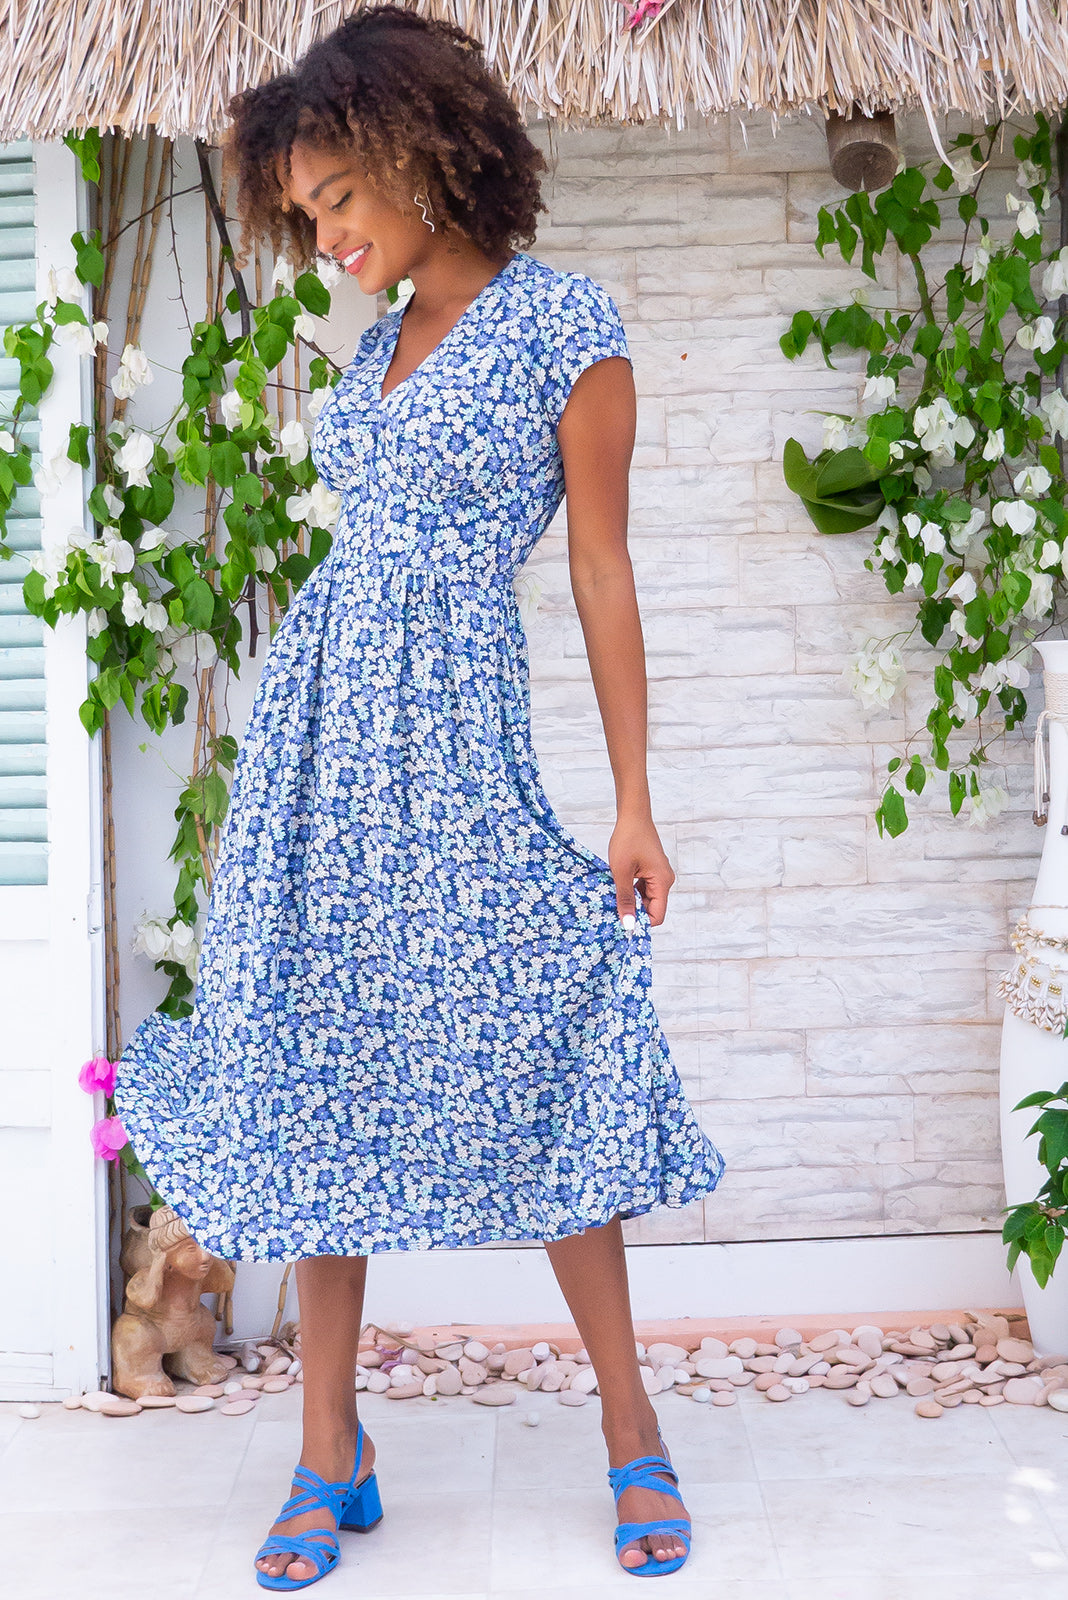 Lizzie Blue Daisies Midi Dress, retro inspired frock has fitted basque waist with gathered bust, waist features elastic shirring at back, deep side pockets, navy base with blue, teal and cream floral print in woven 100% rayon.